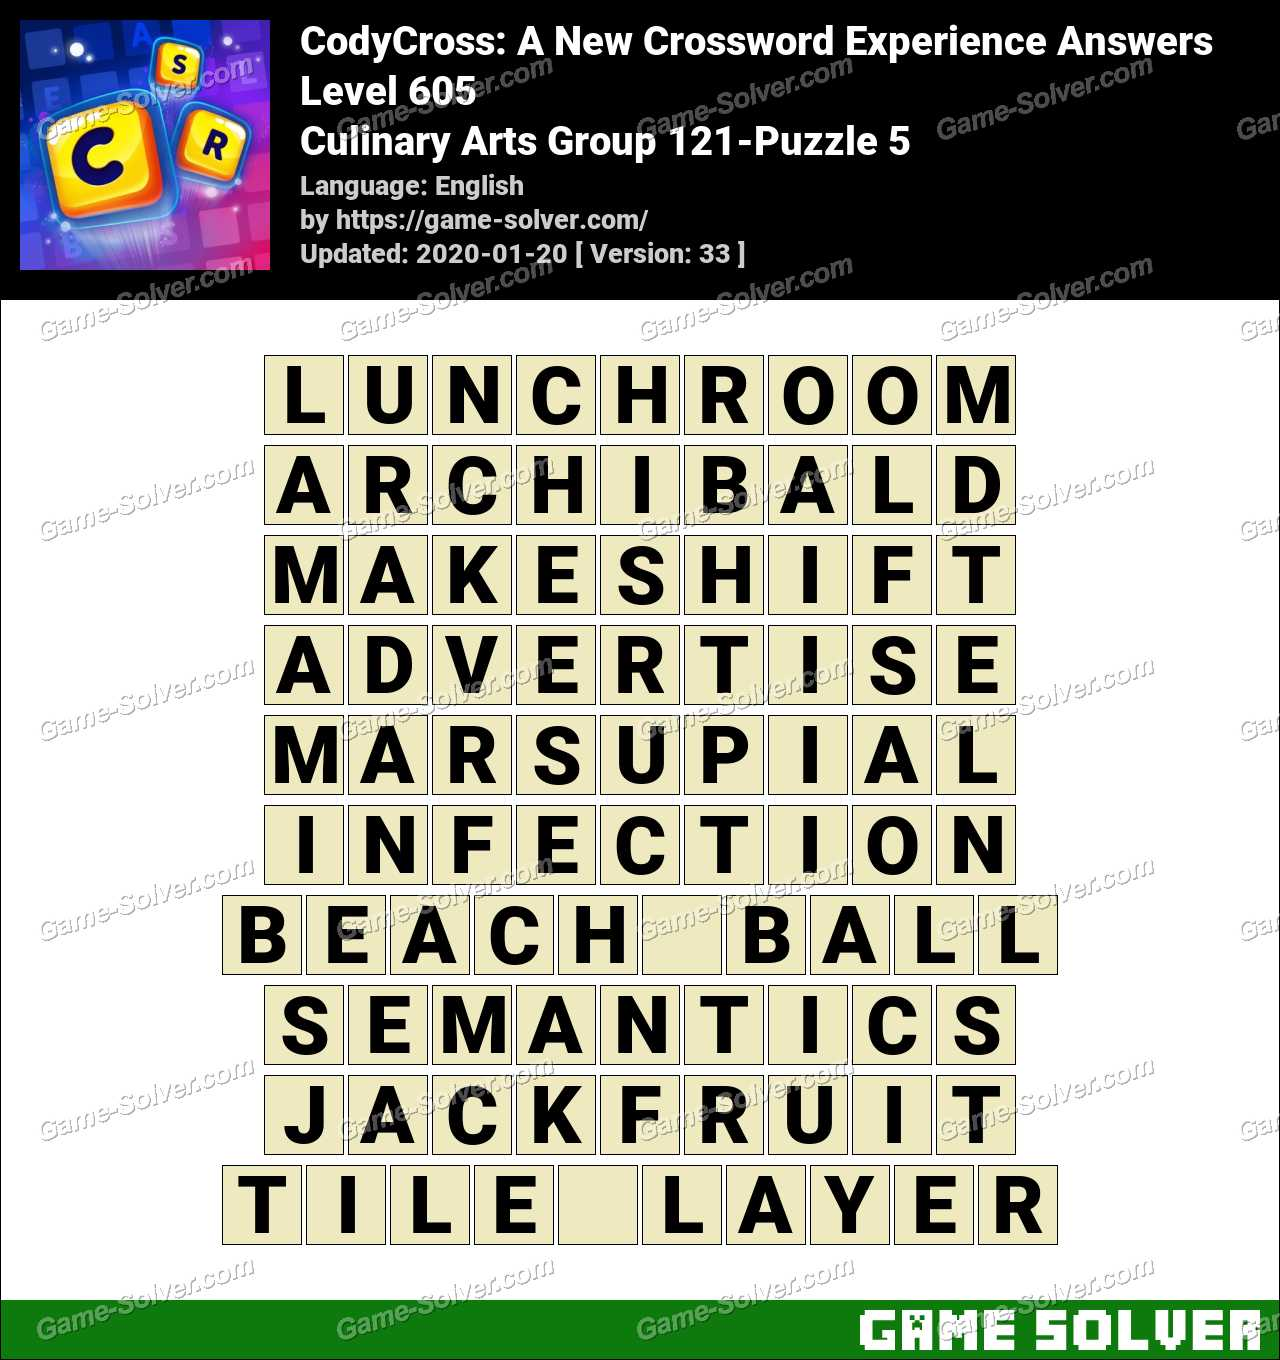 CodyCross Culinary Arts Group 121-Puzzle 5 Answers